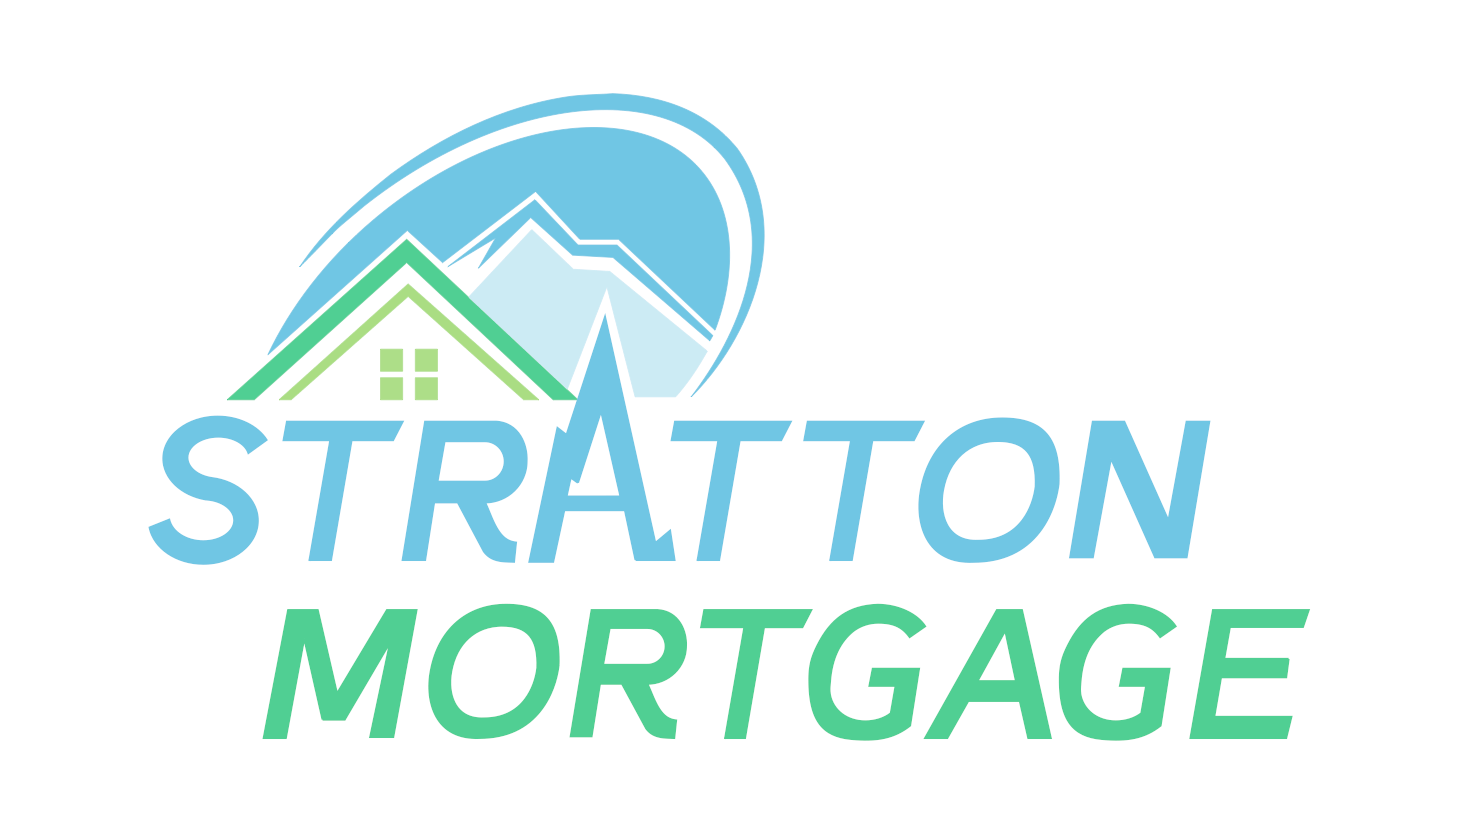 Stratton Mortgage, LLC